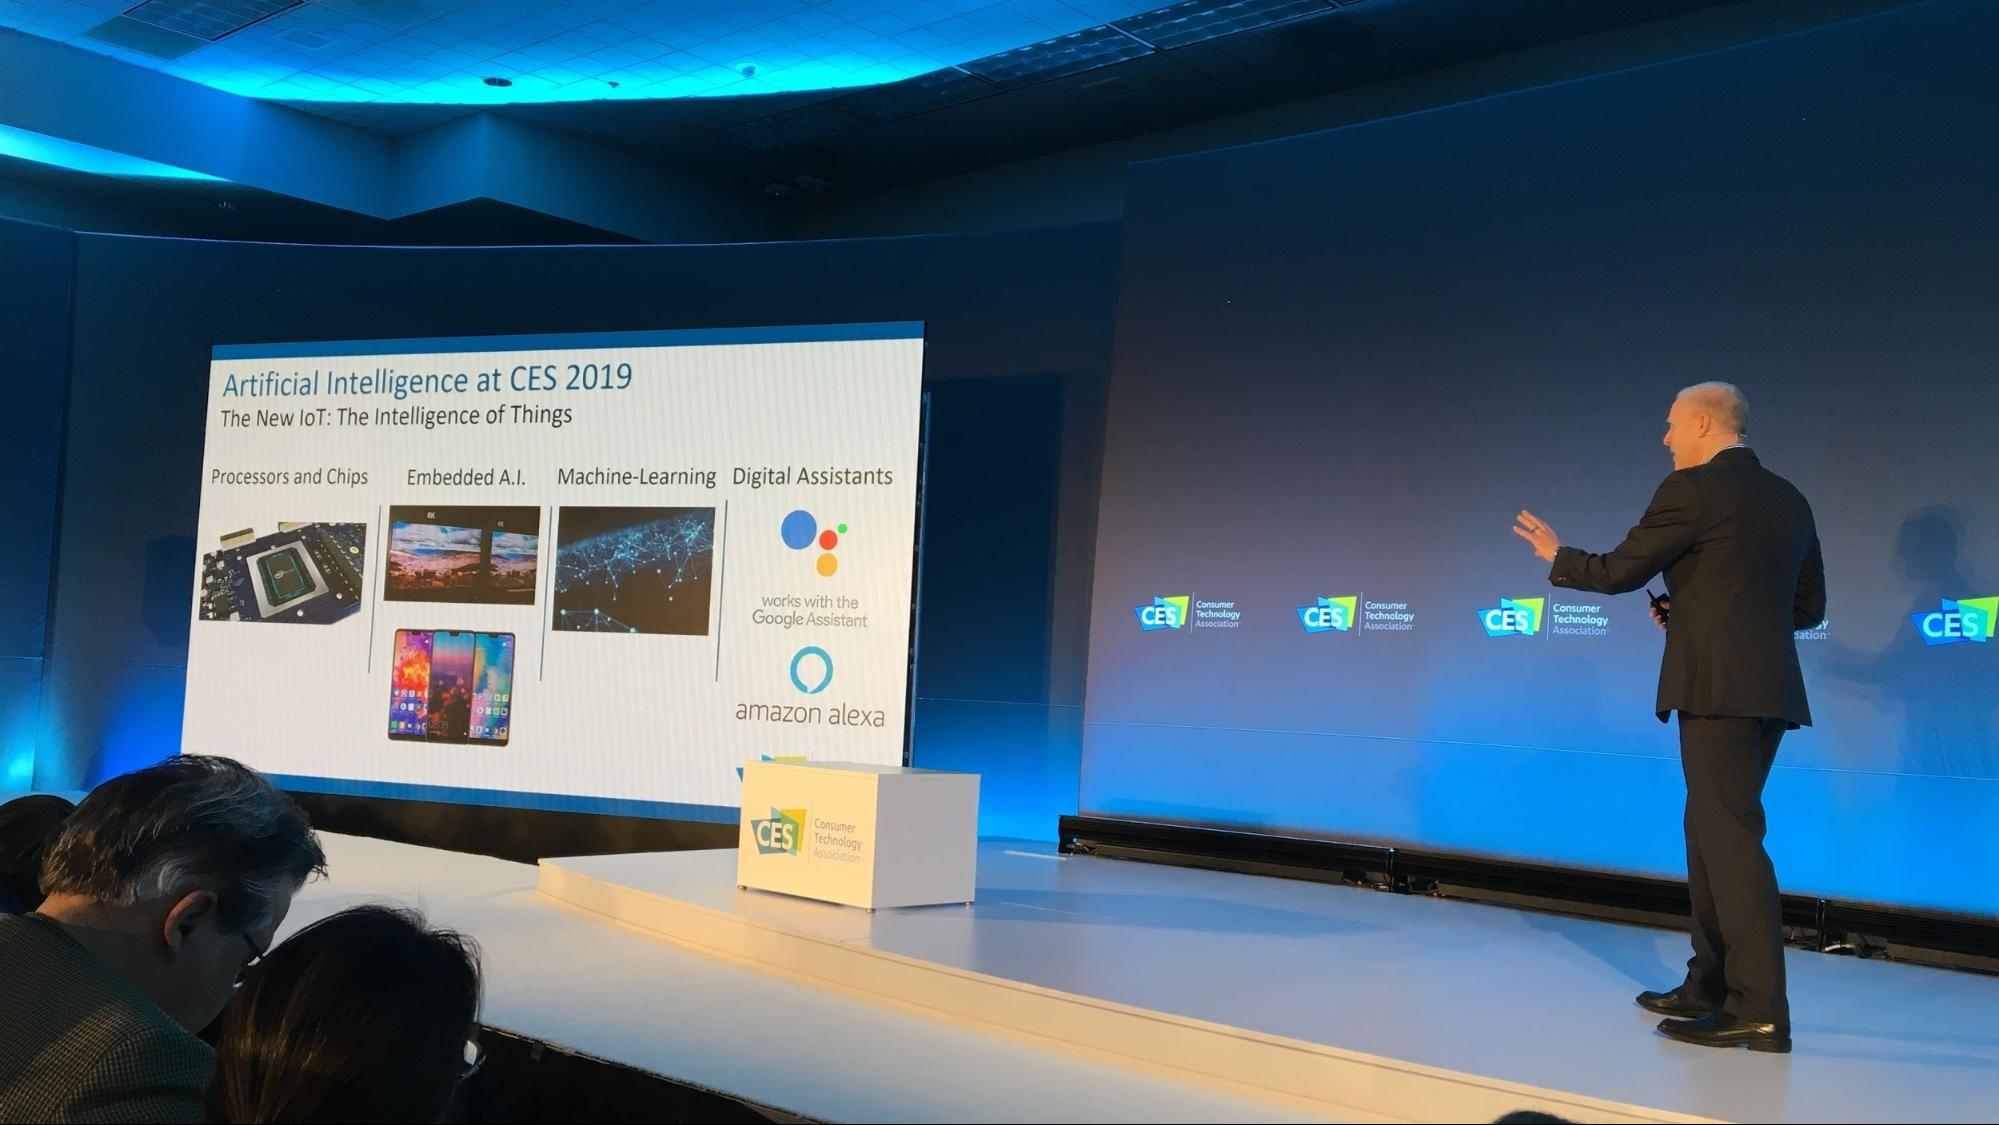 Artificial Intelligence presentation at CES 2019.